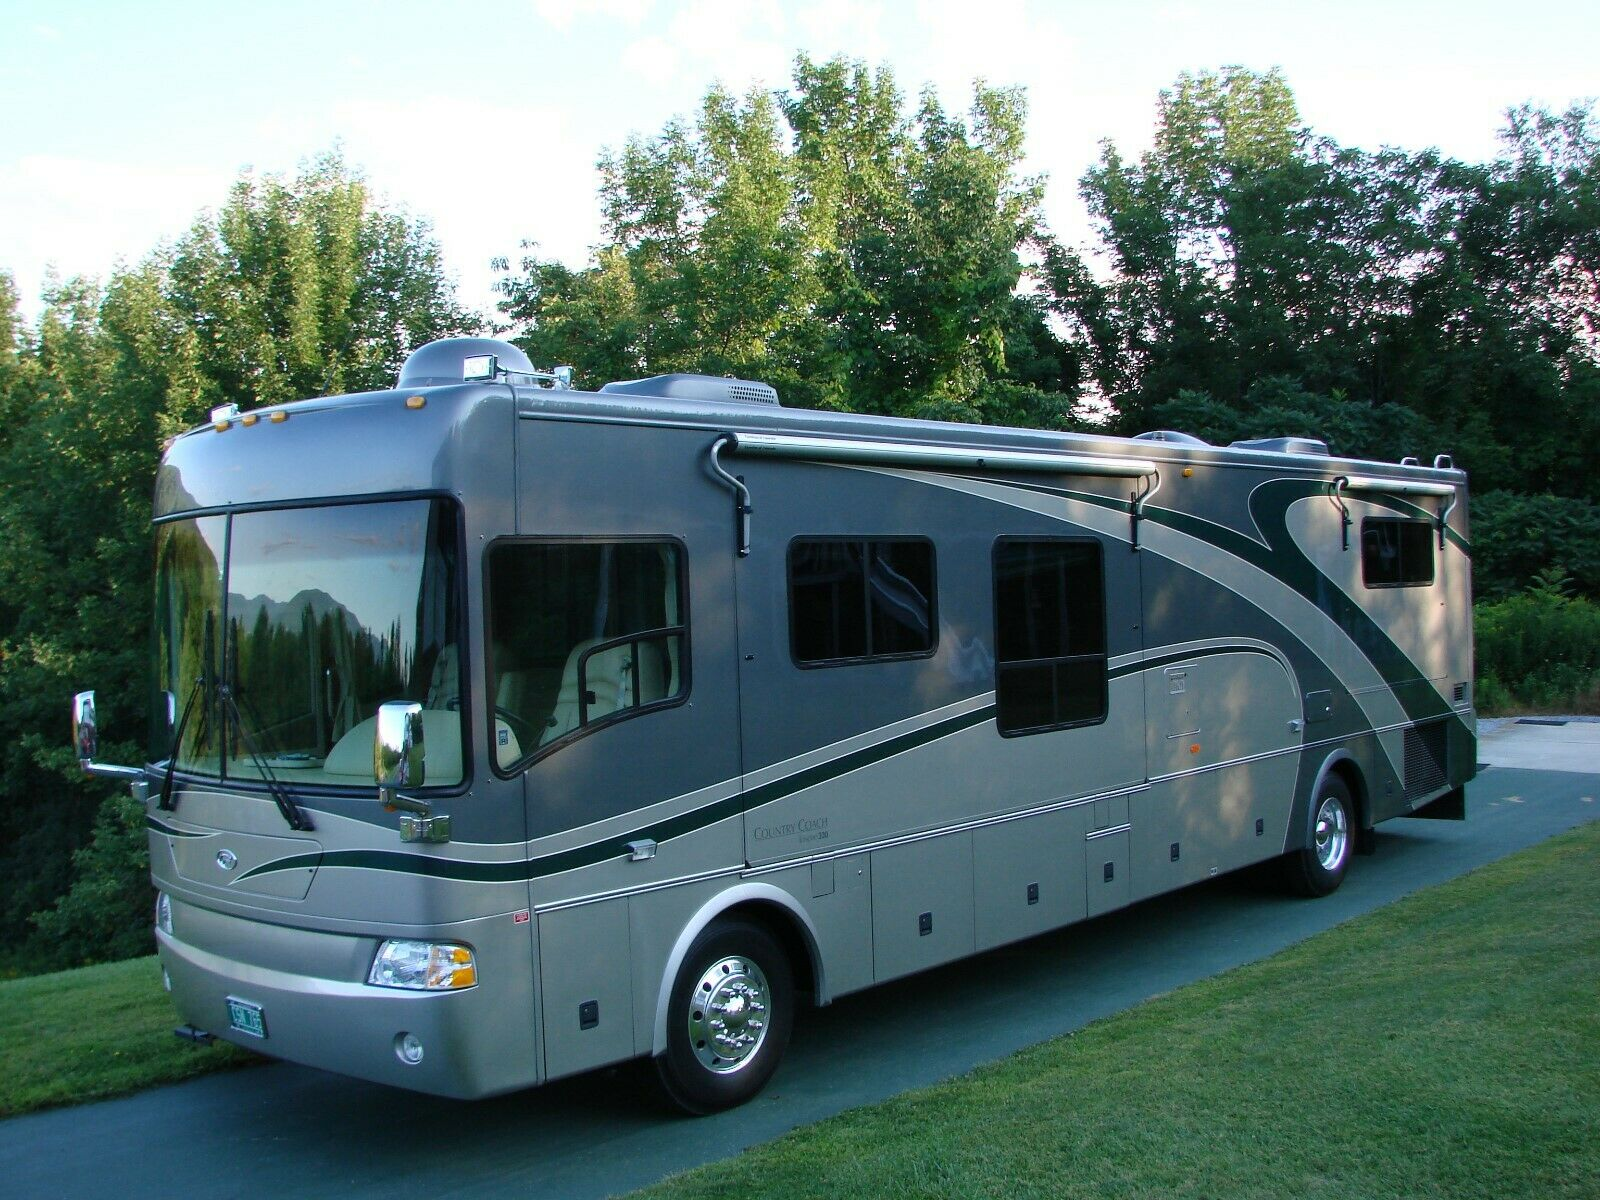 low miles 2005 Country Coach camper for sale